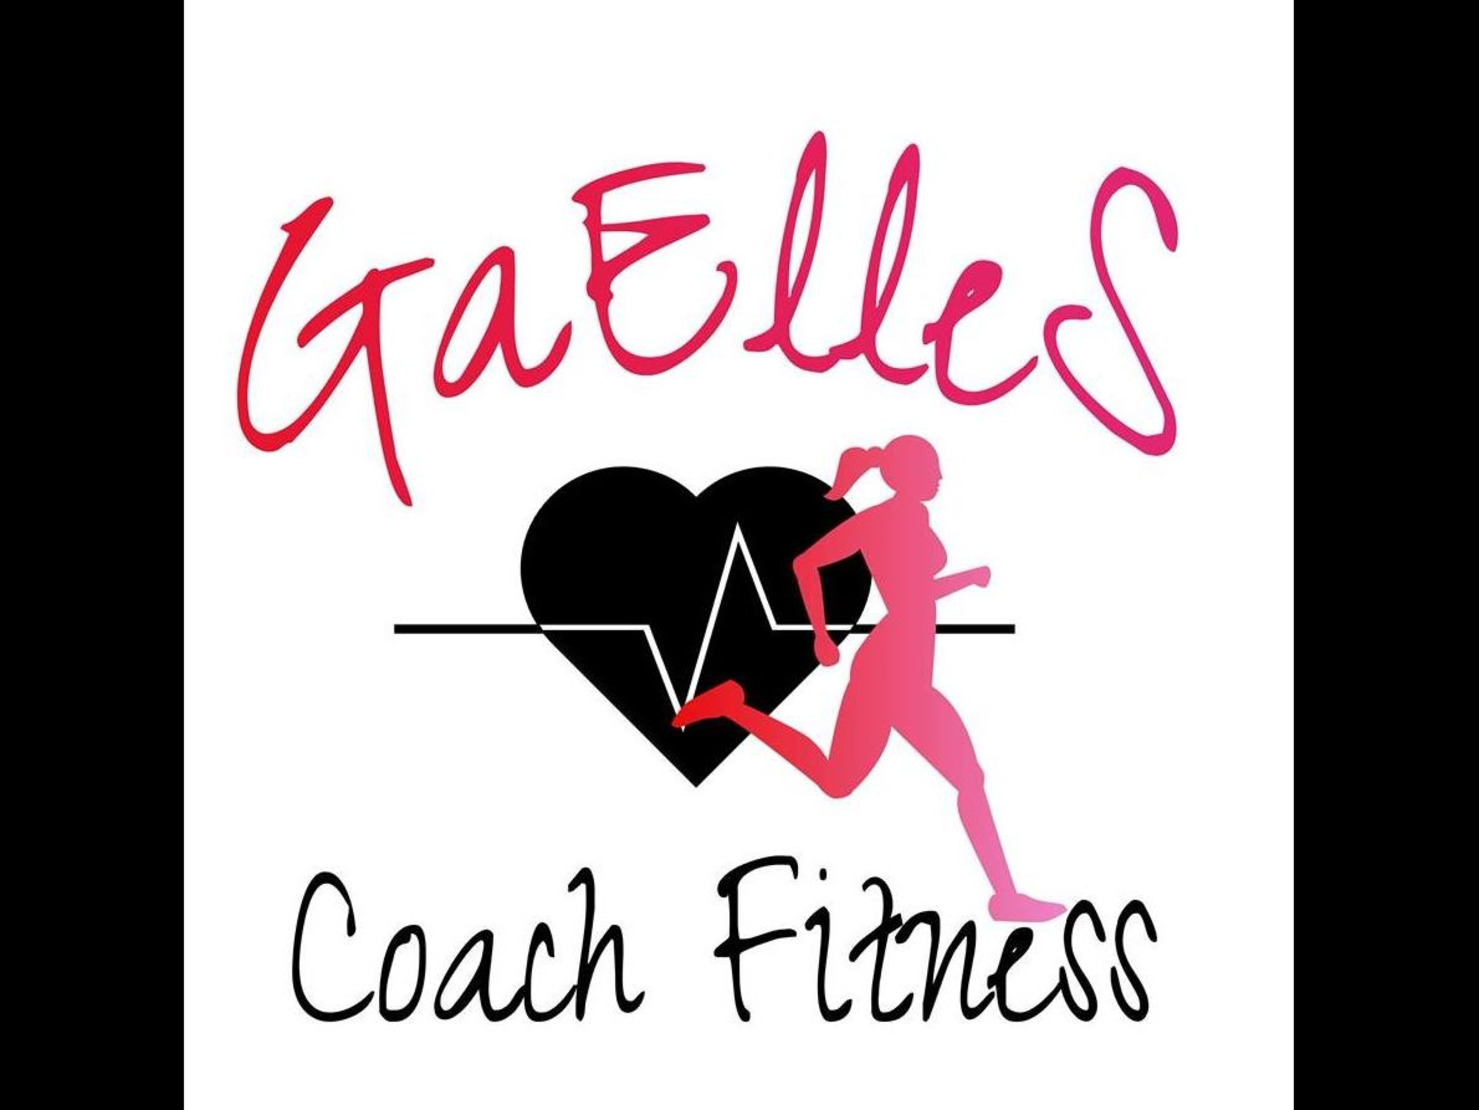 GaElleS Coach Fitness-0